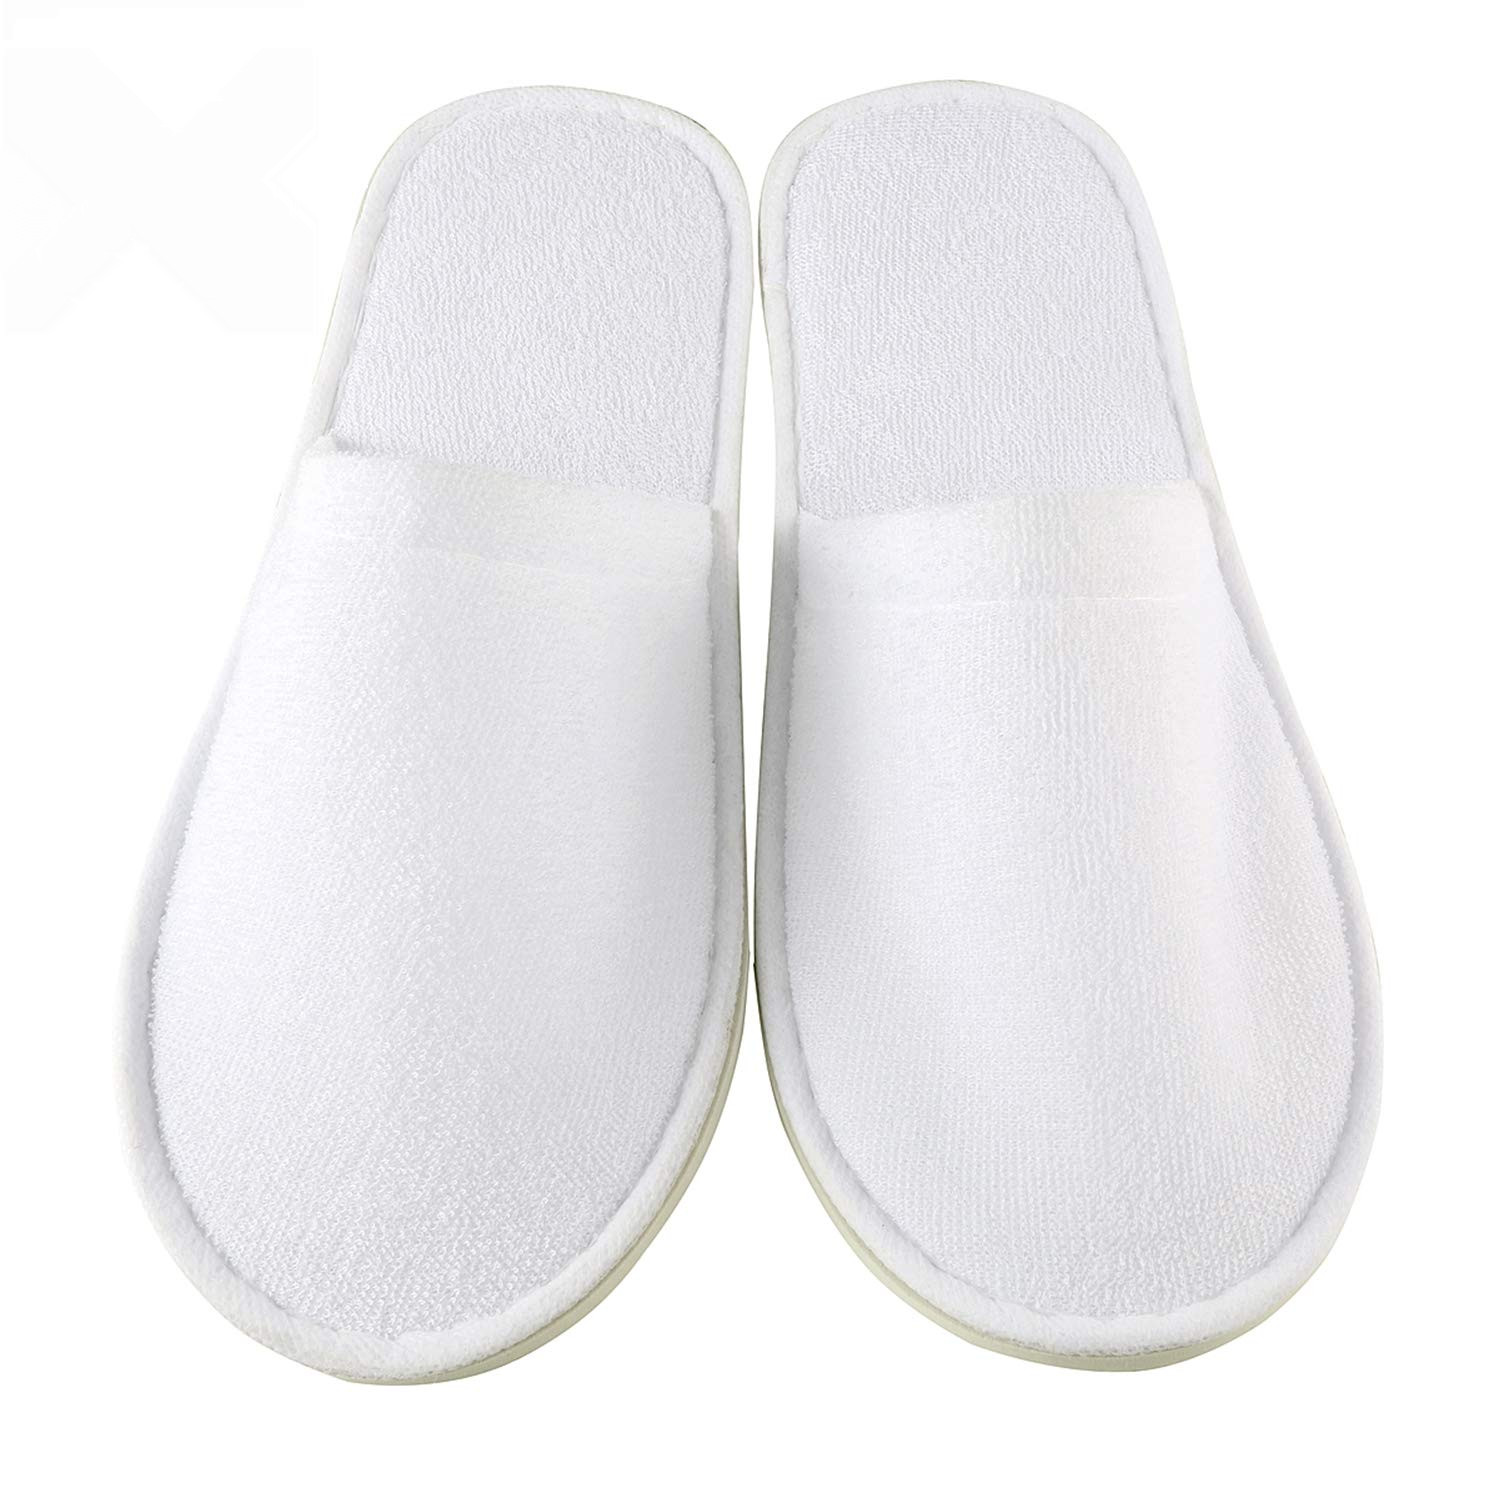 hotel slipper manufacturer 2020 hot selling cheap terry towel hotel slippers